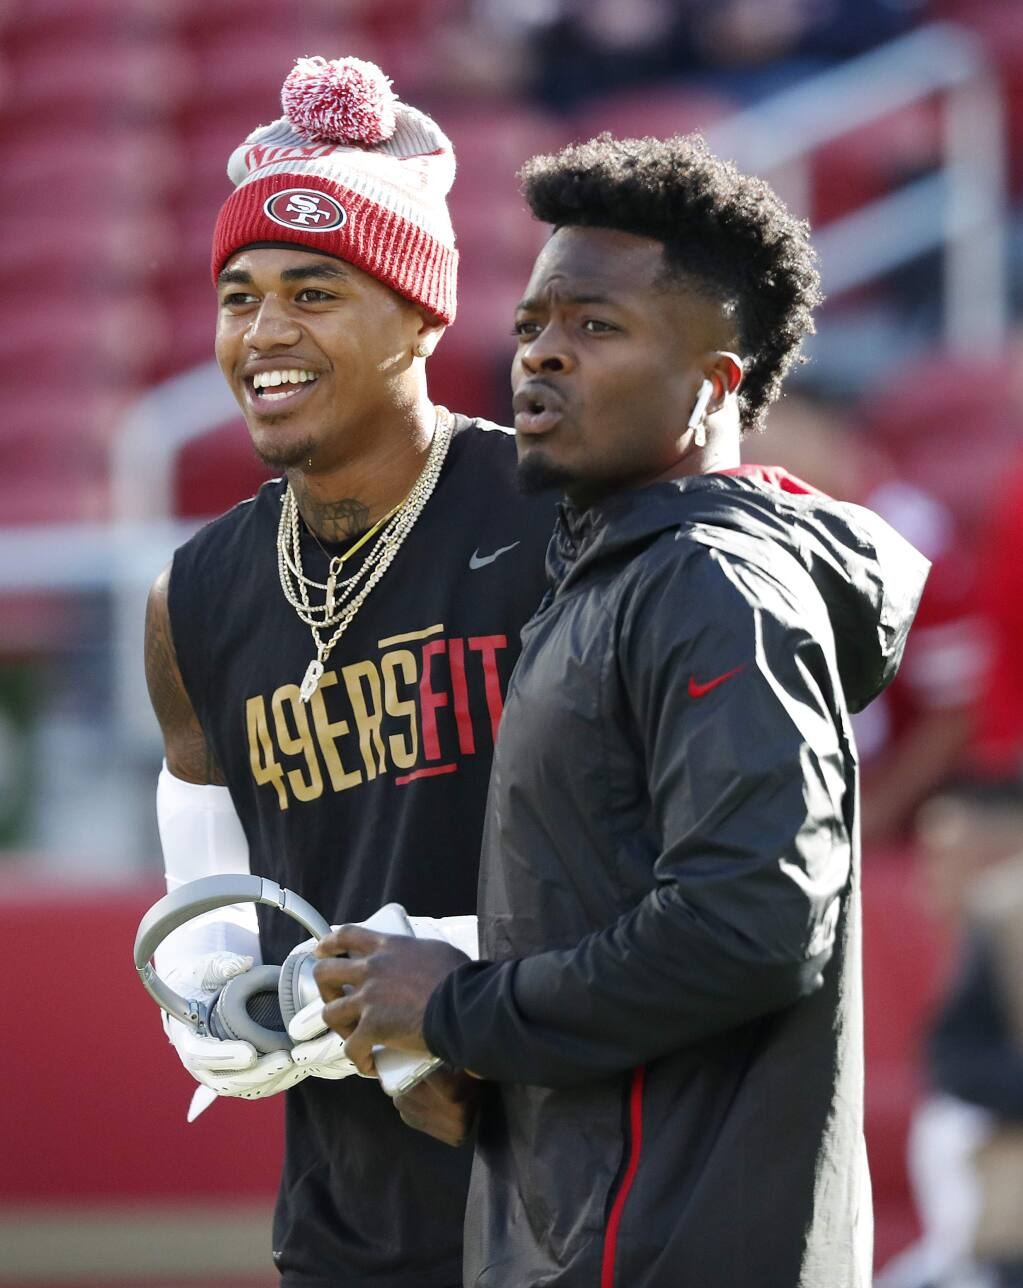 San Francisco 49ers wide receiver Kendrick Bourne, left, talks with wide receiver Marquise Goodwin before an NFL football game against the Chicago Bears in Santa Clara, Calif., Sunday, Dec. 23, 2018. (AP Photo/Tony Avelar)